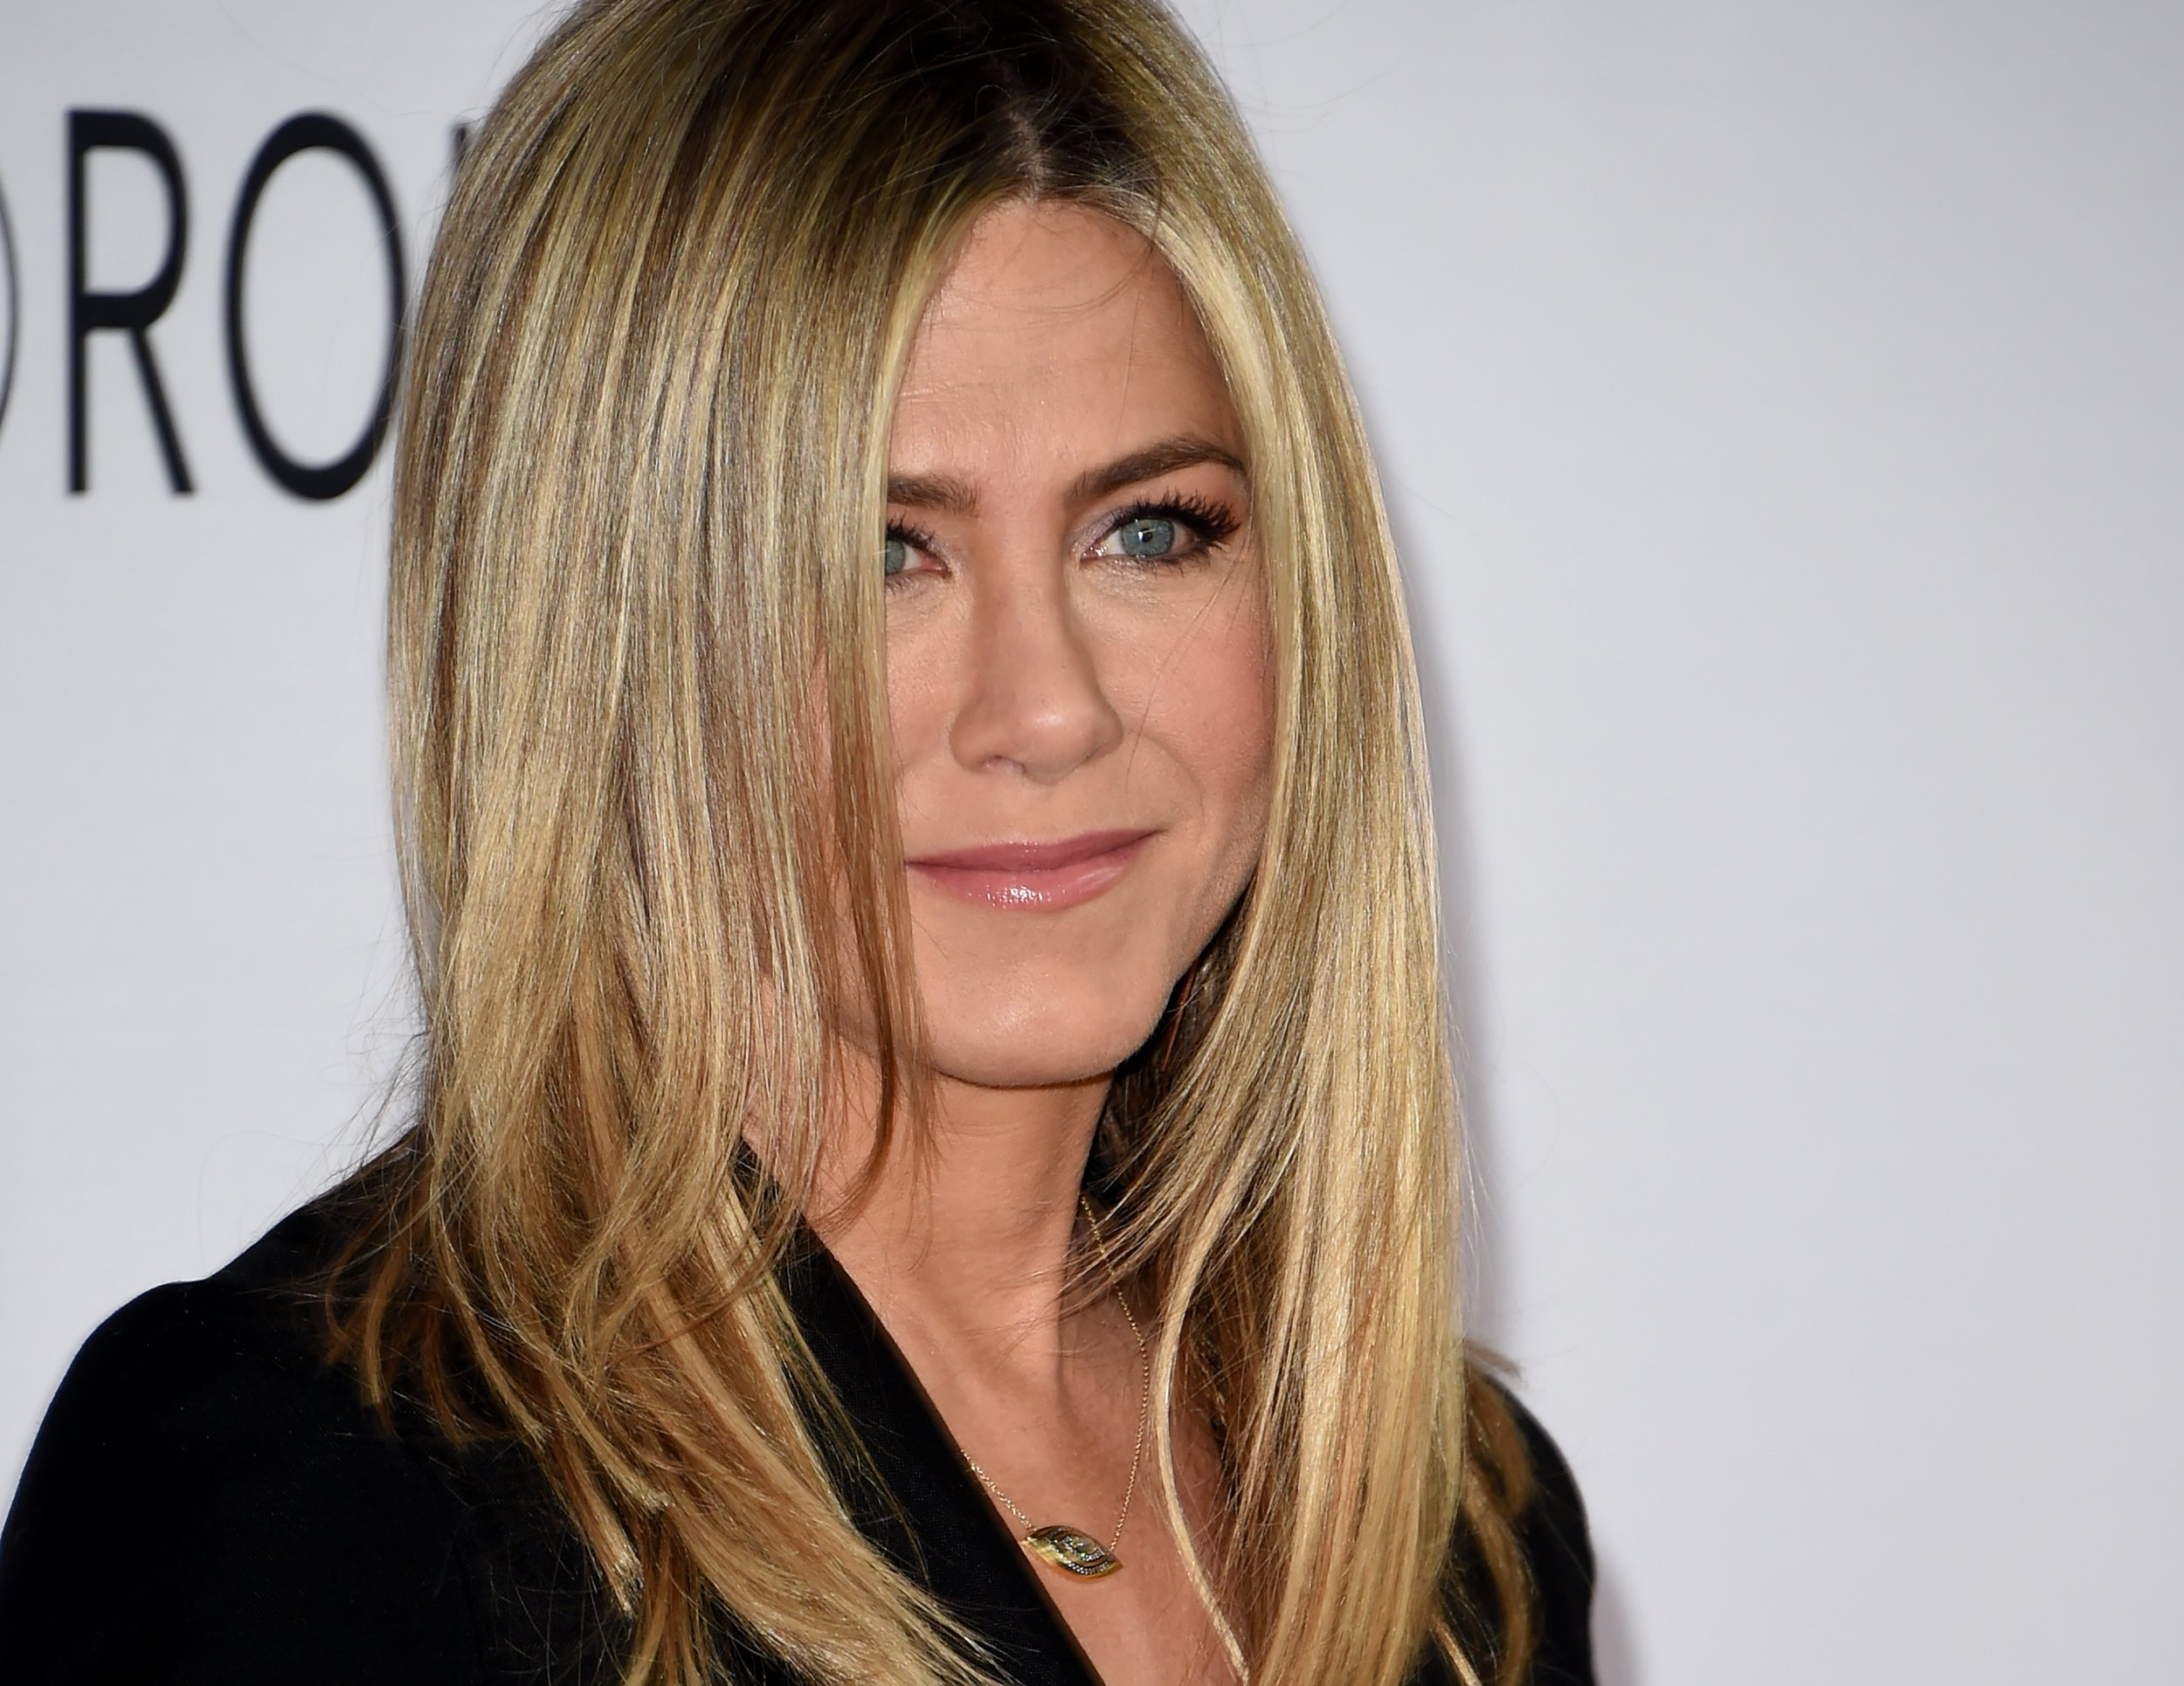 Jennifer Aniston addresses pregnancy rumors